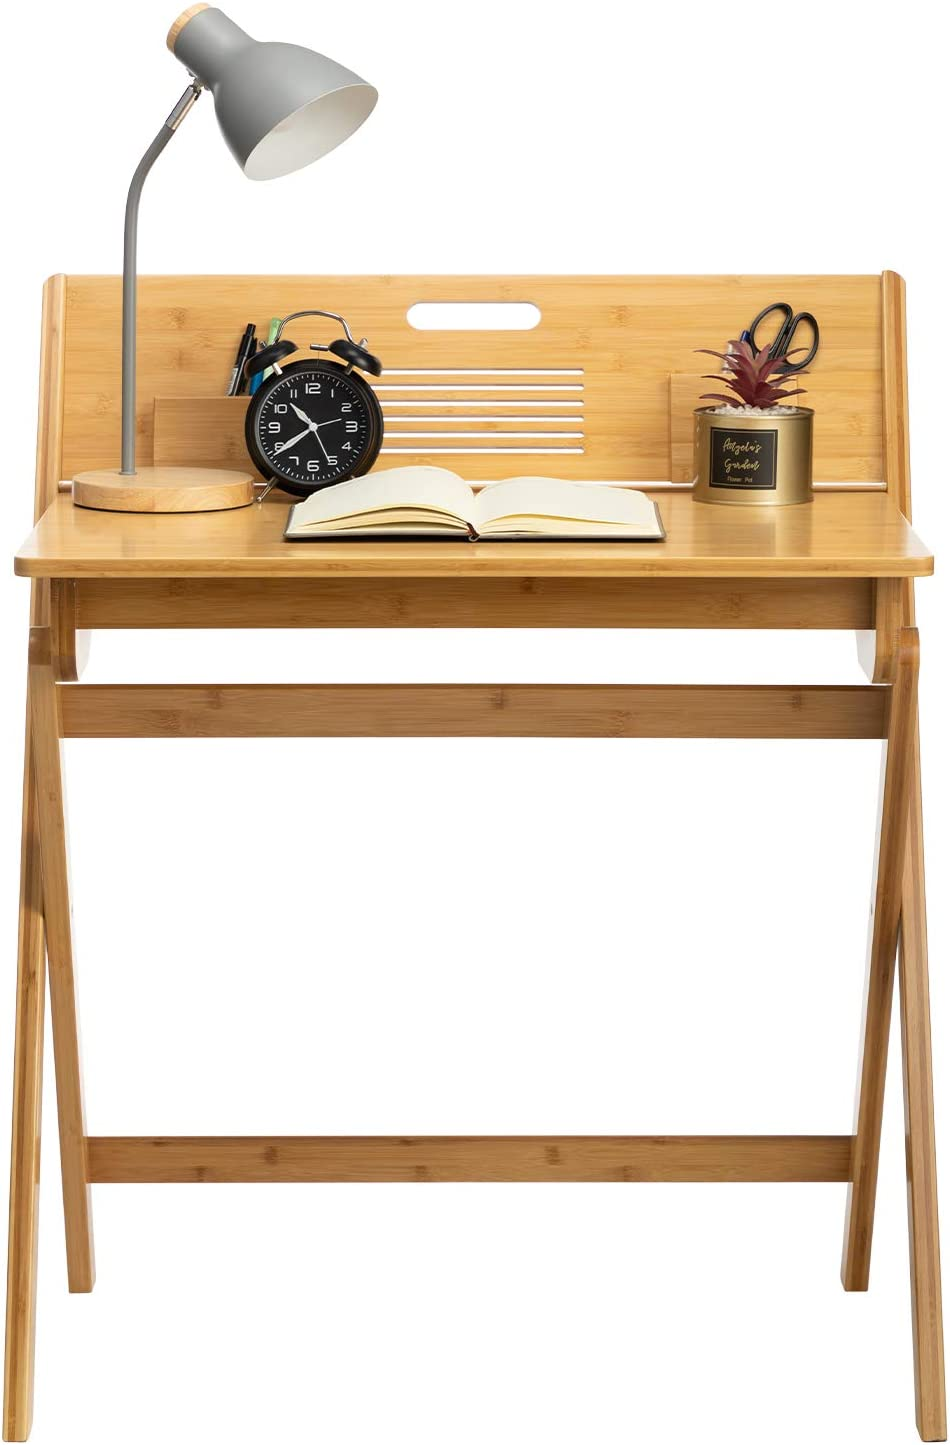 AbocoFur Bamboo Folding Writing Desk for Small Space, Small Study Computer and Laptop Desk with Storage Space, No Assembly Required Home Office Desk, Portable Dressing Table for Apartment, Bedroom